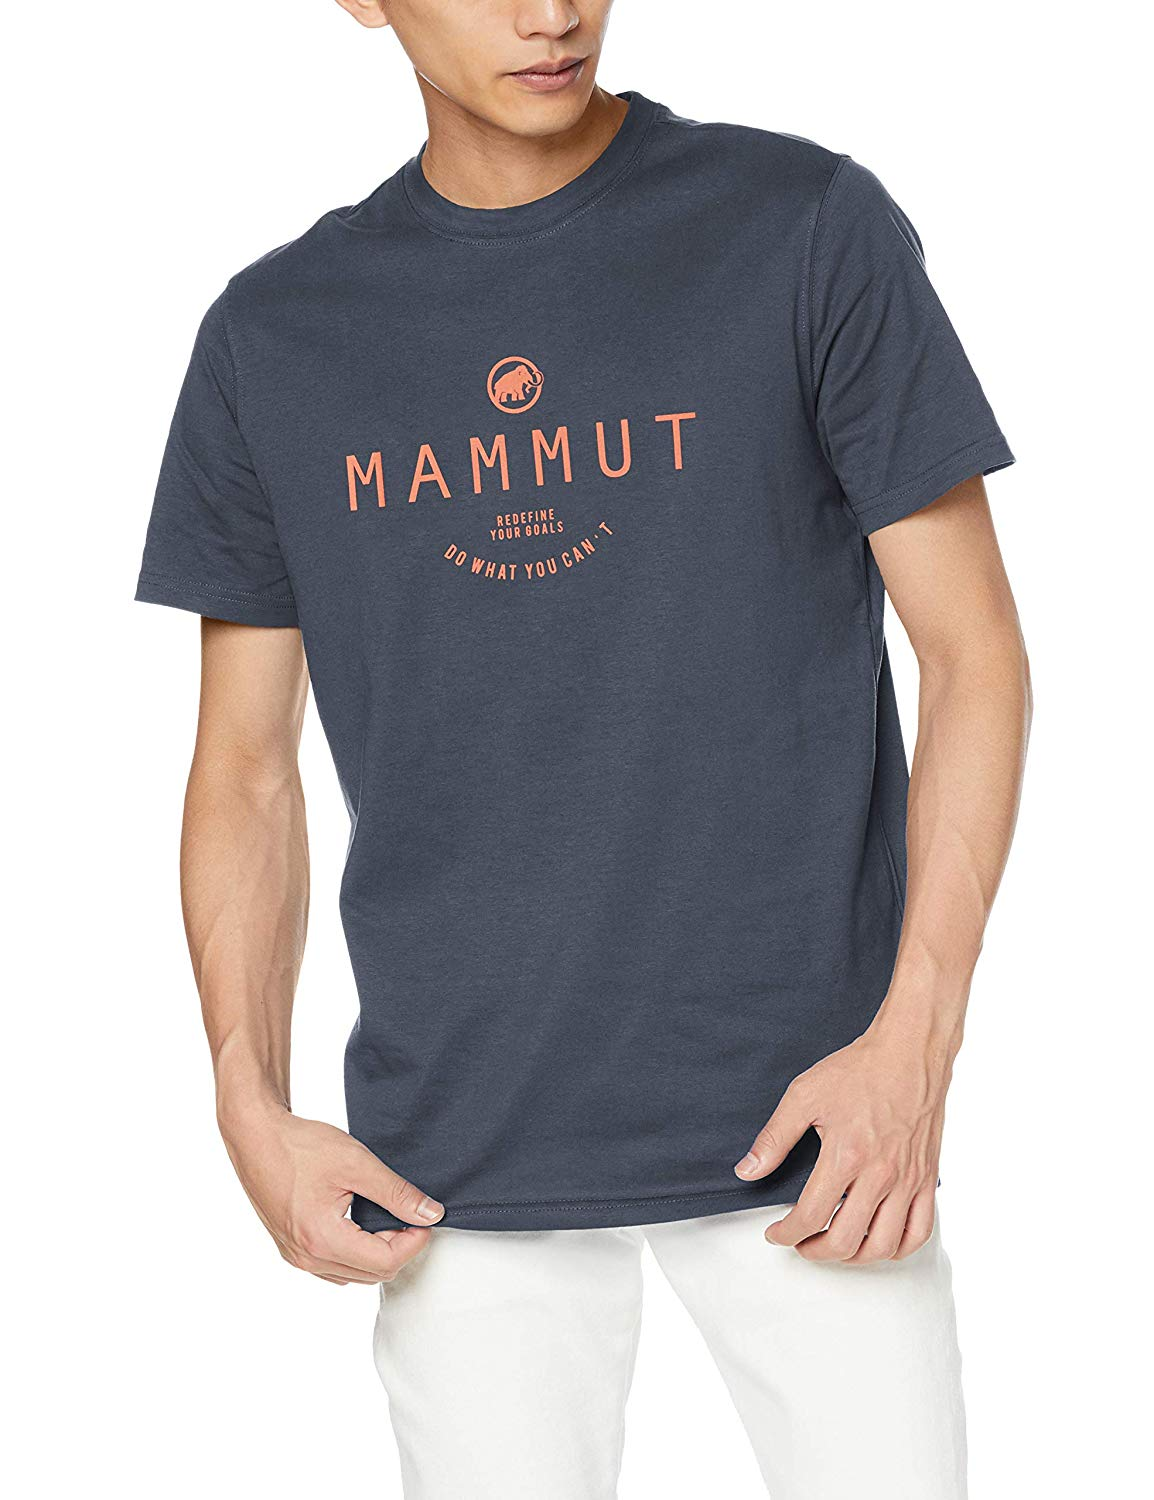 Mammut Seile Short-Sleeve T-Shirt - Men'S Unisex Size S-3XL